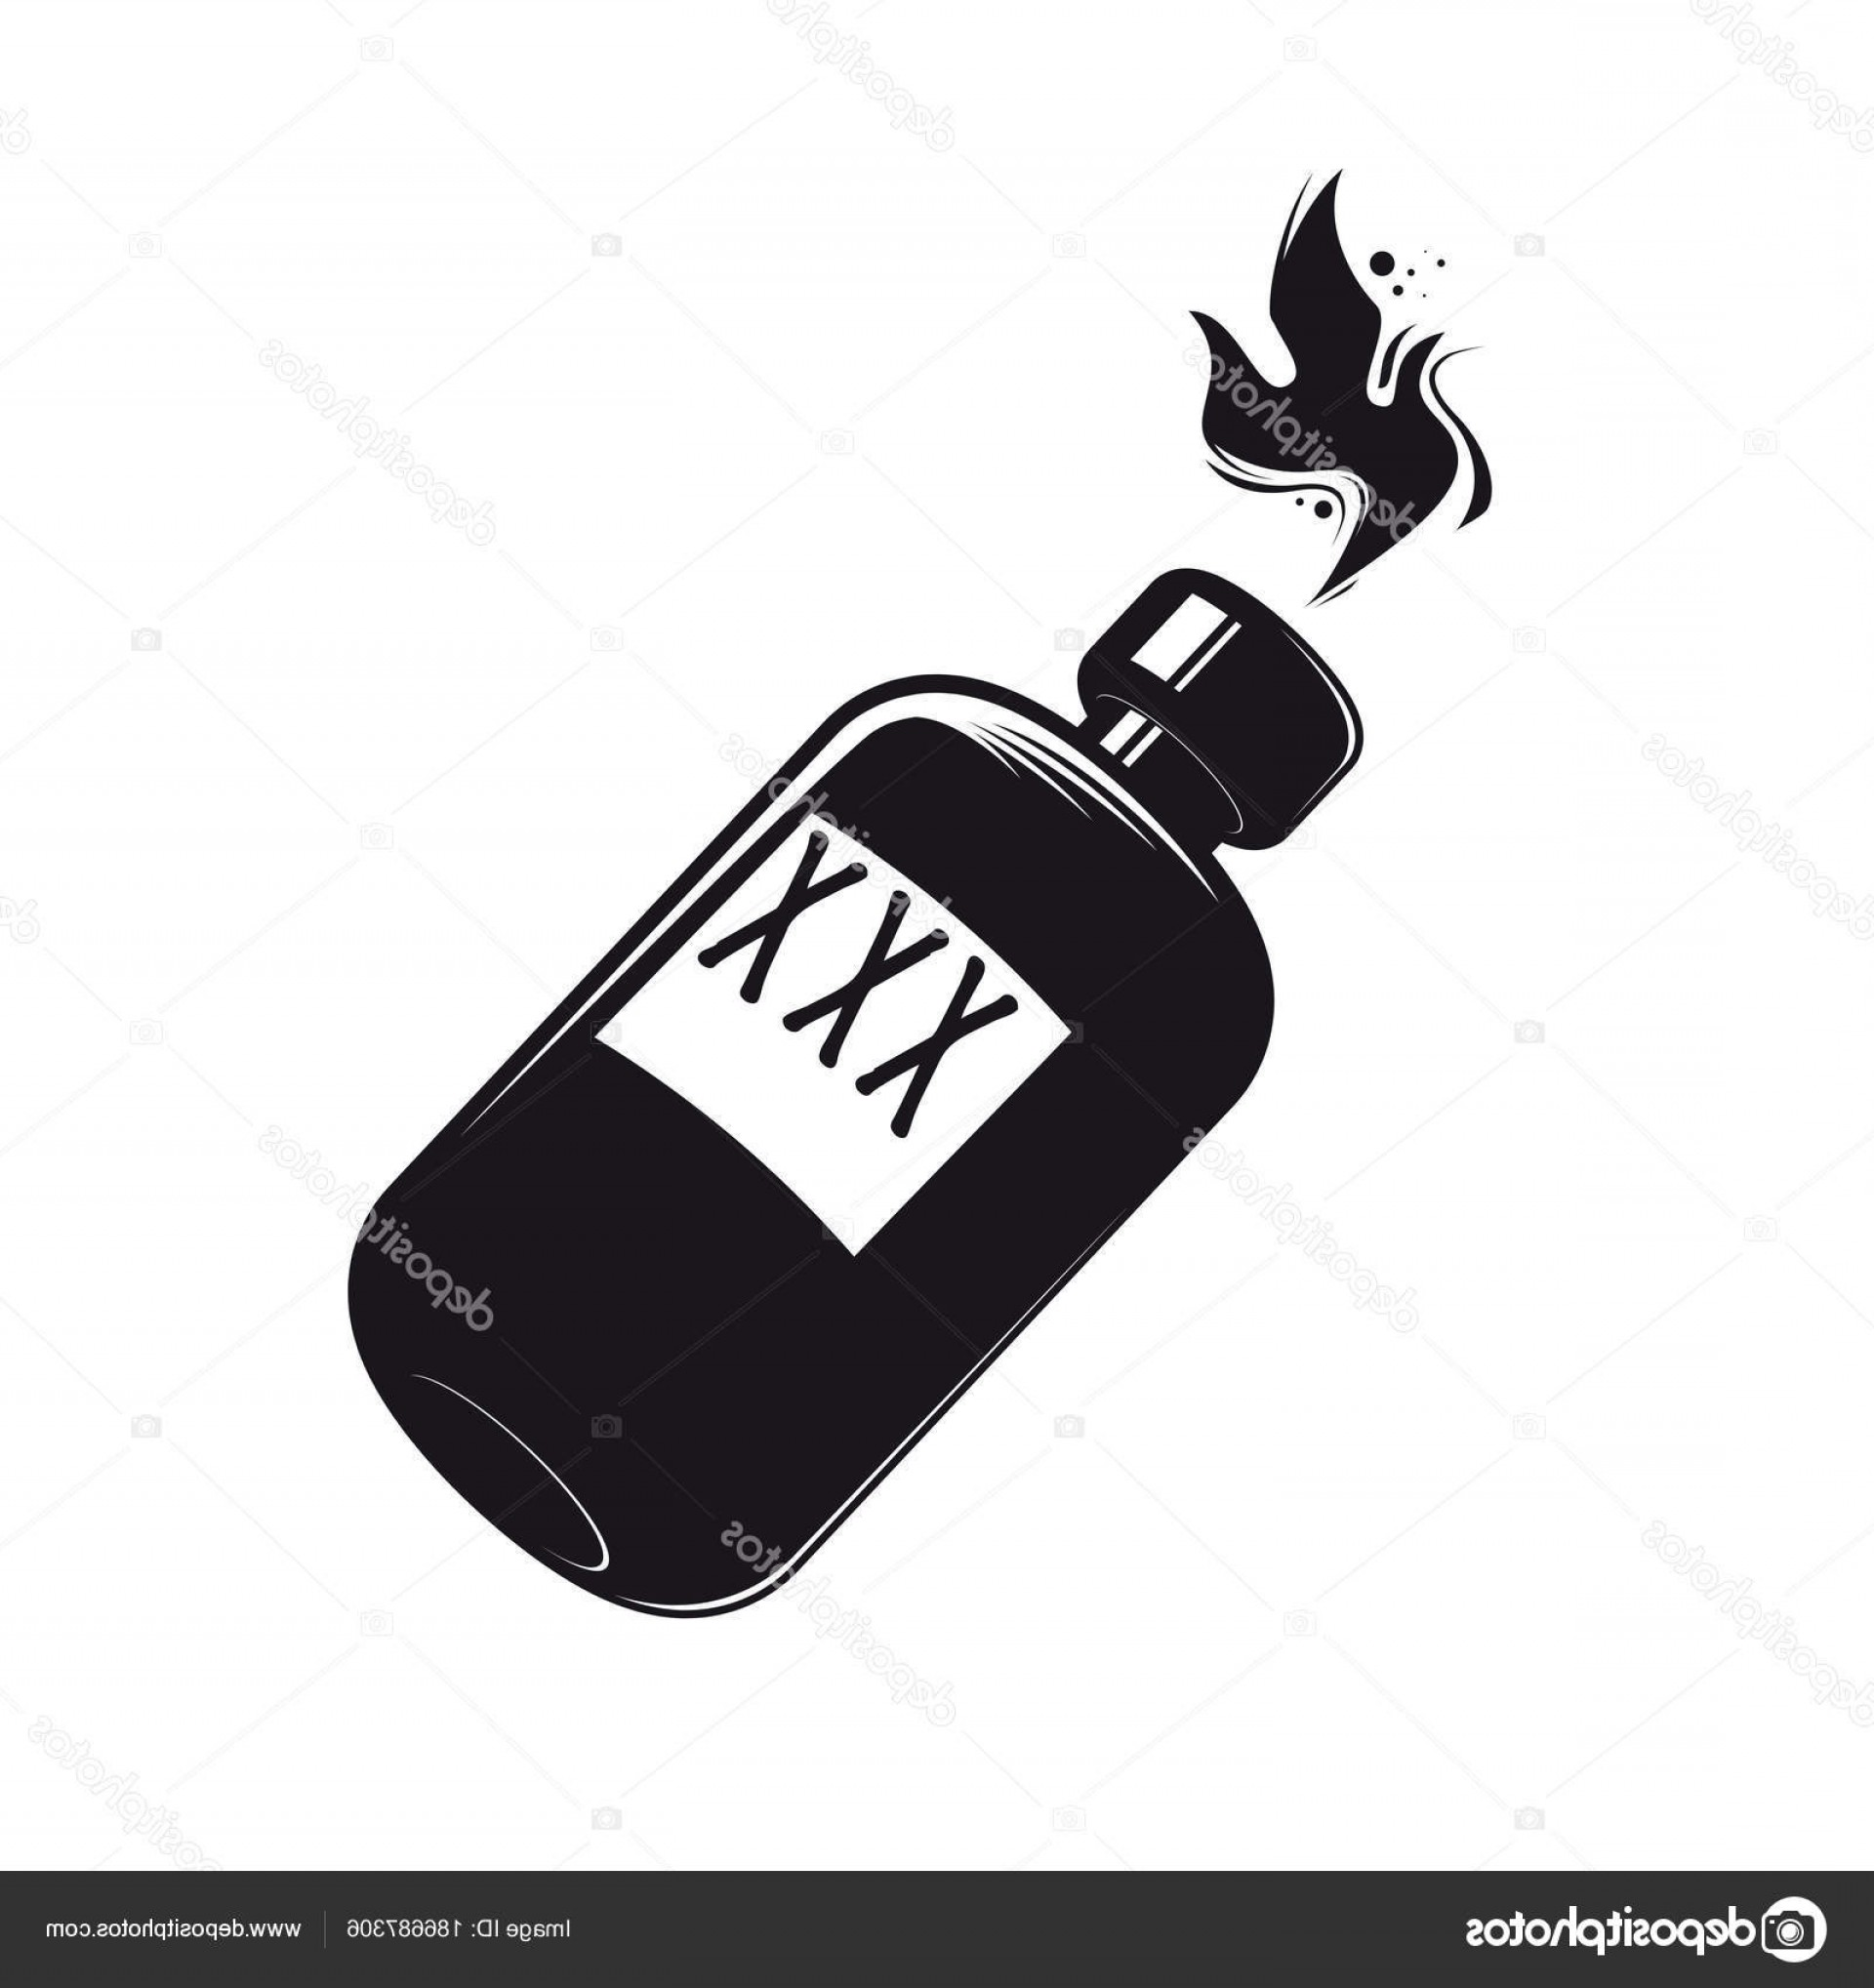 Booze Bottle Vector: Stock Illustration Black Bottle Booze Clipart